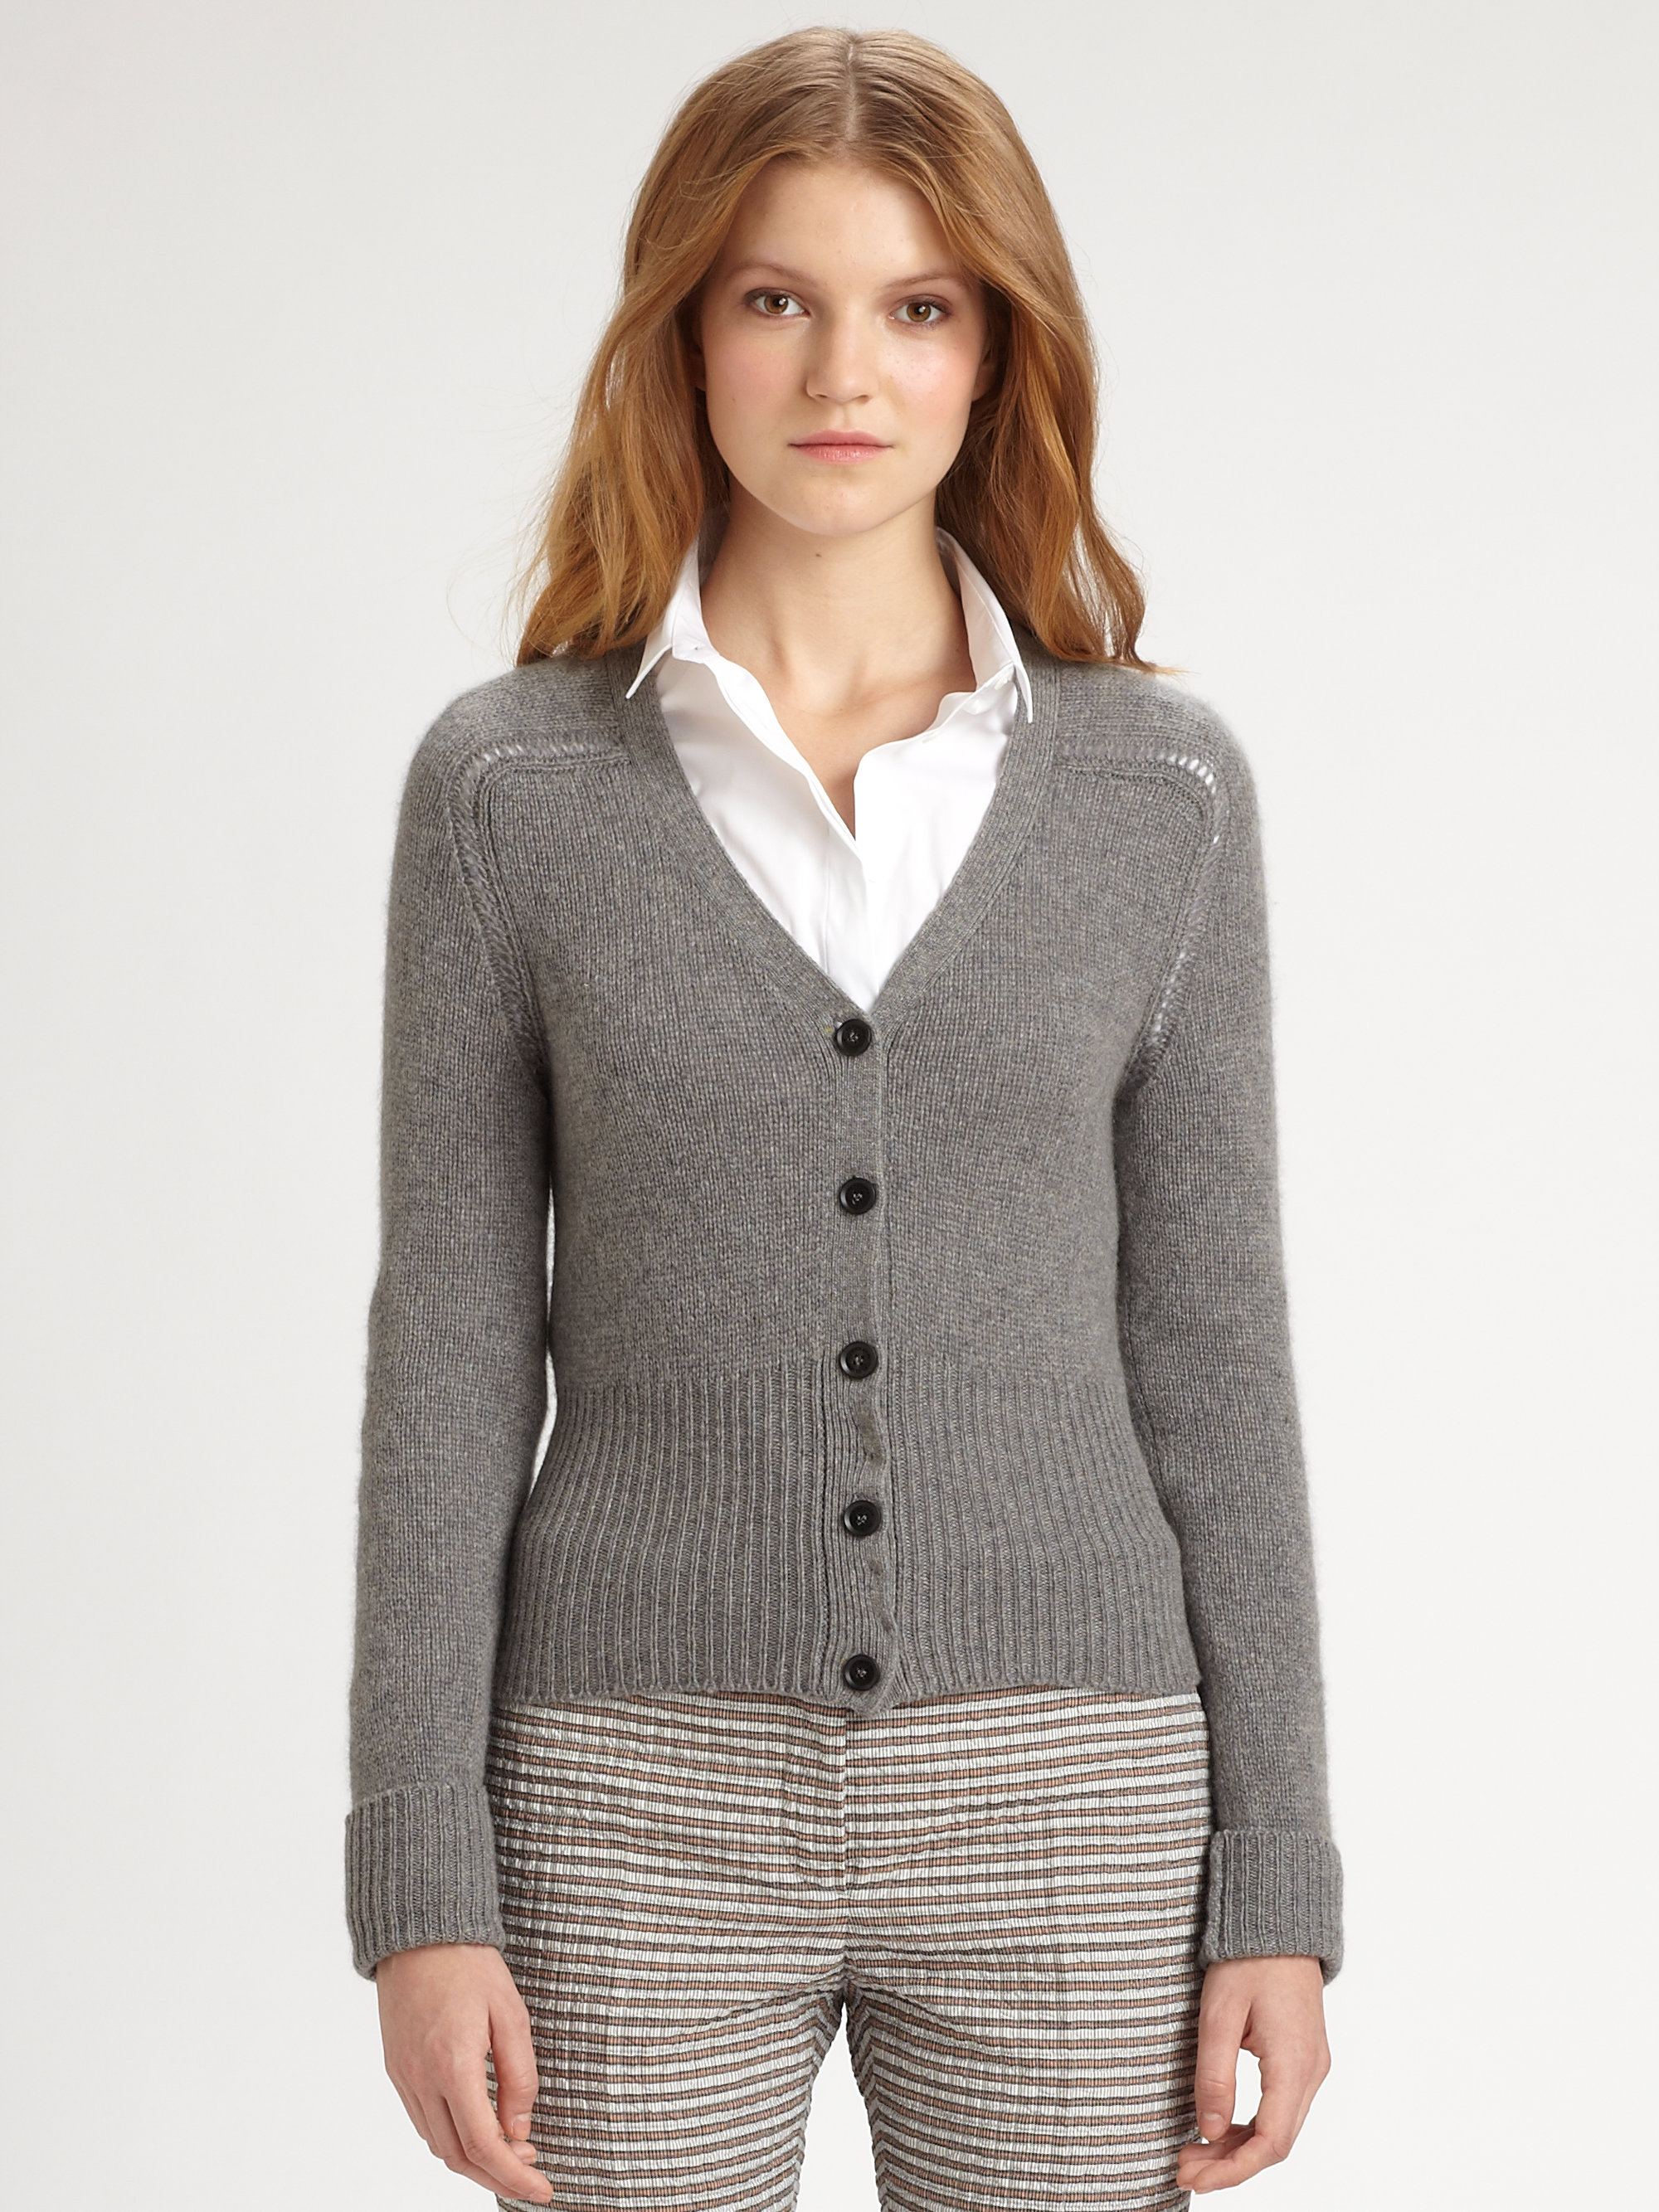 Burberry prorsum Cashmere Cardigan in Gray | Lyst